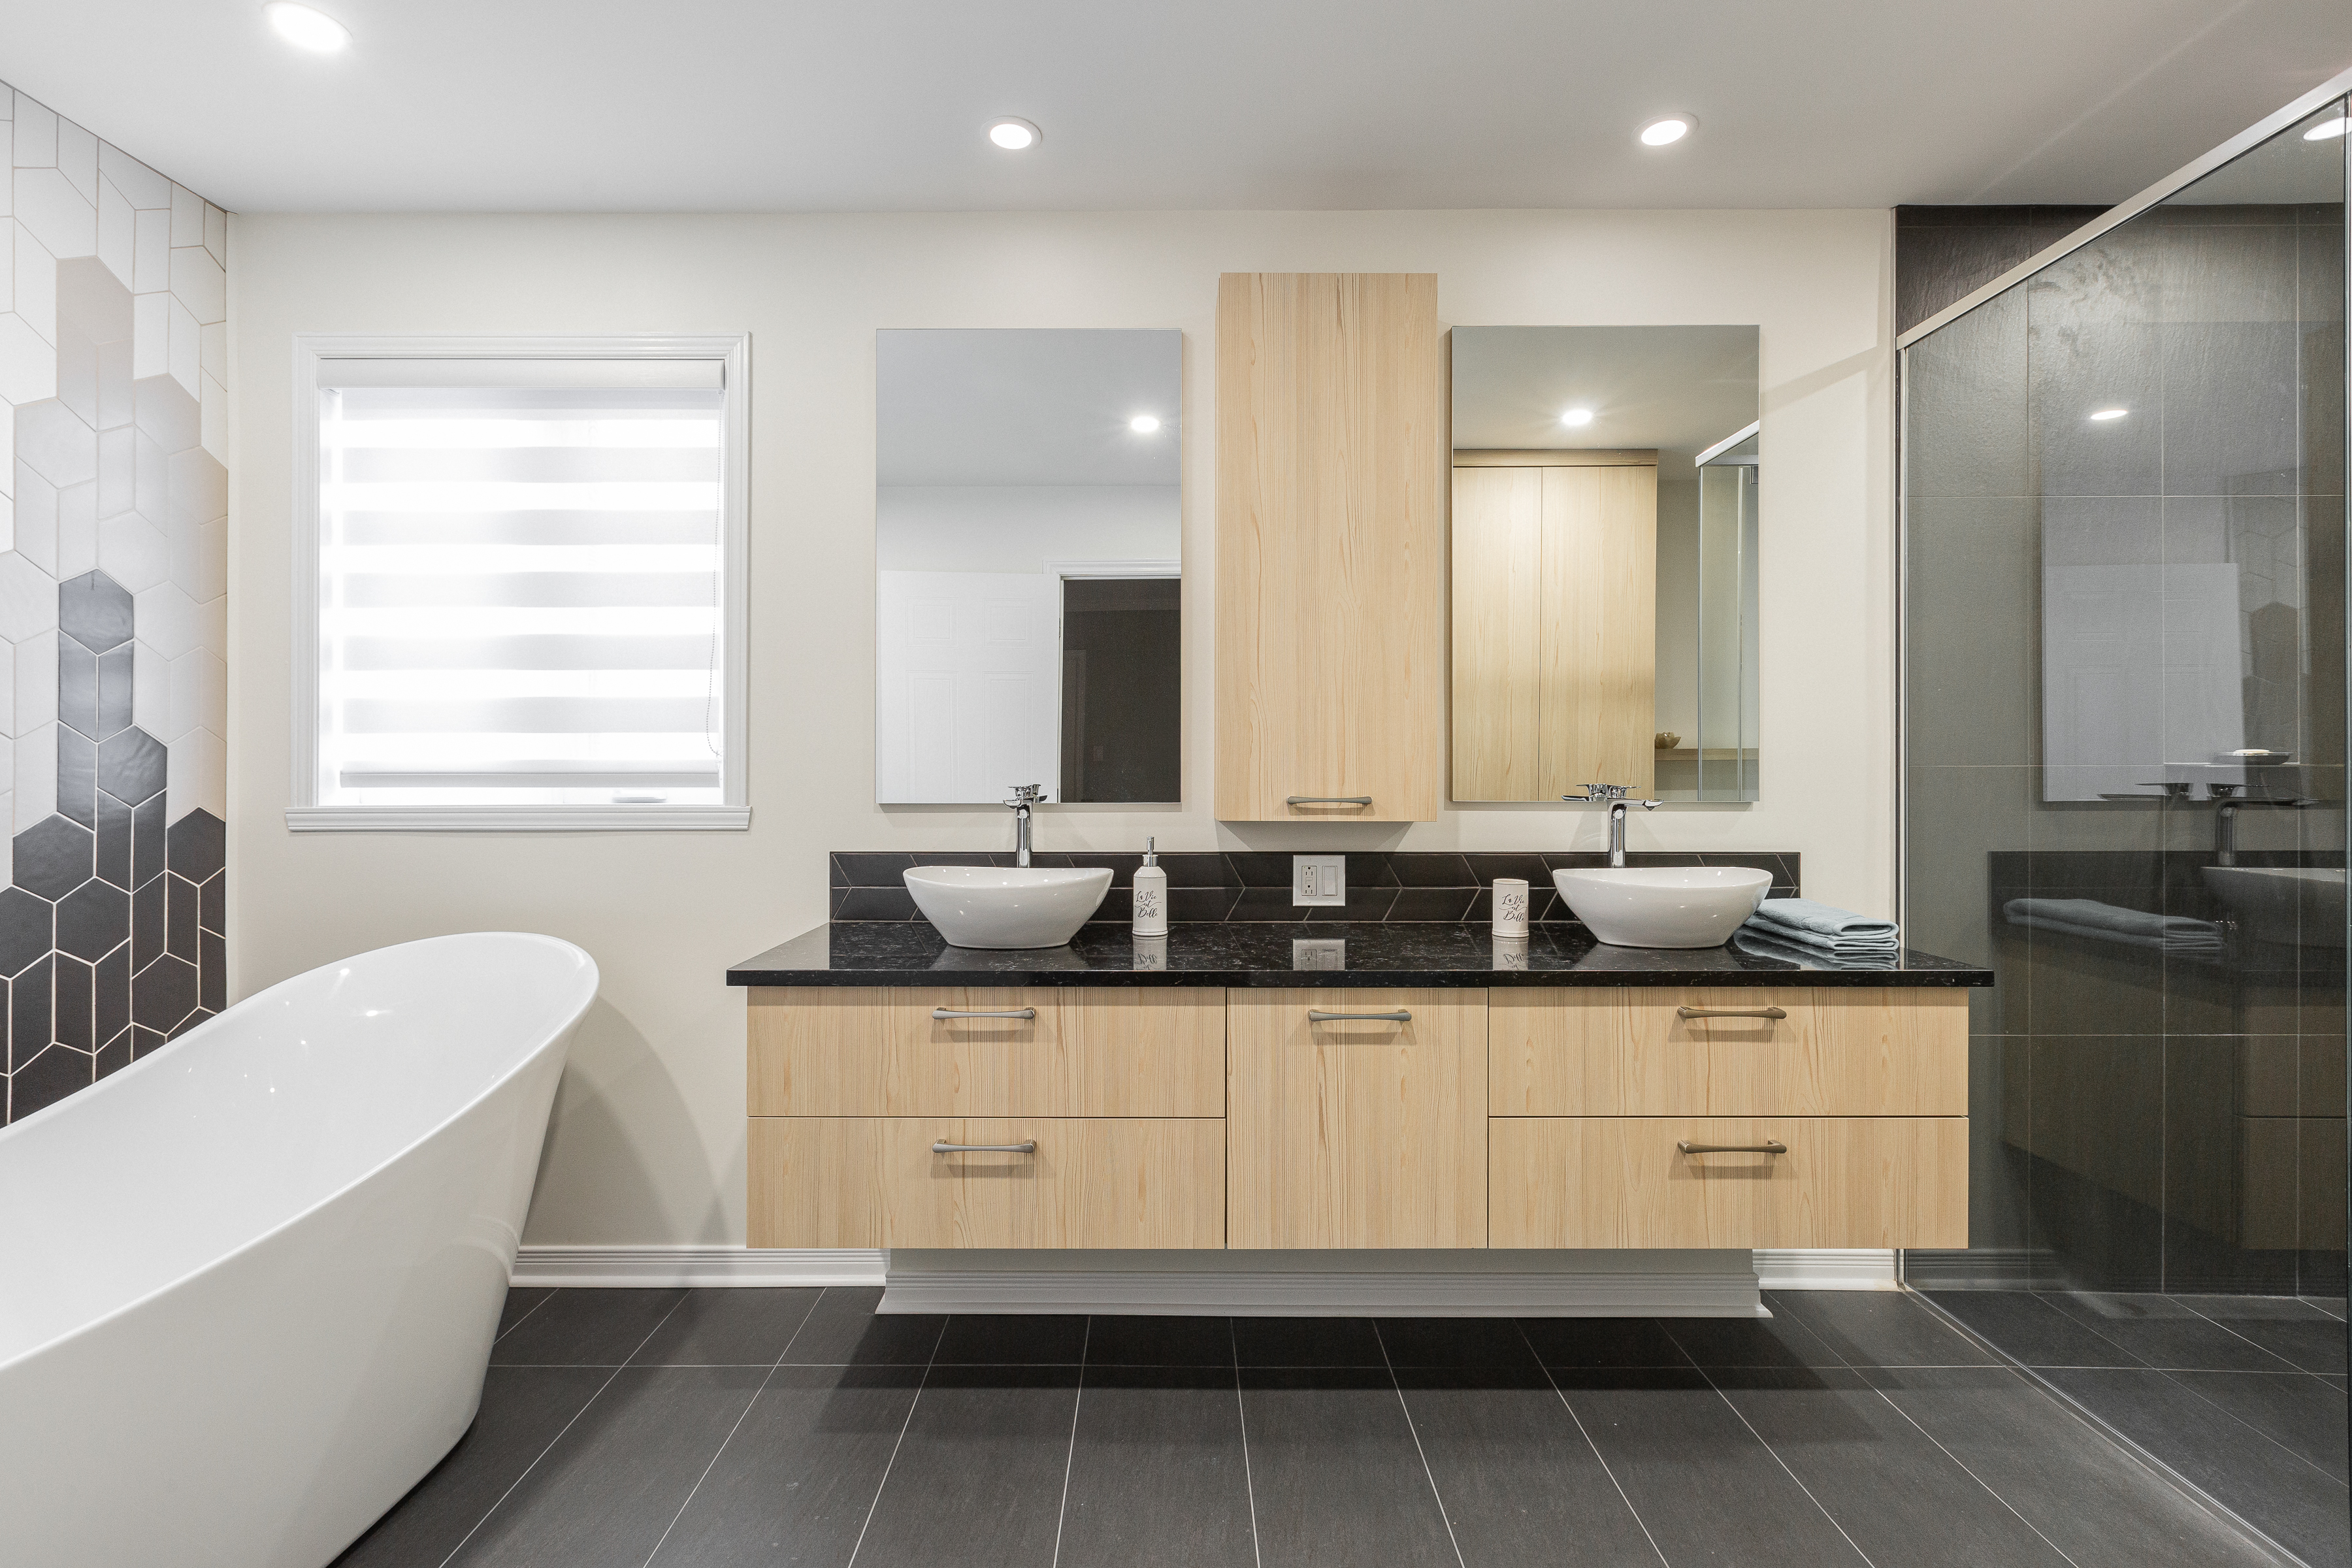 a spacious and trendy bathroom look with a freestanding bathtub and wooden cabinets